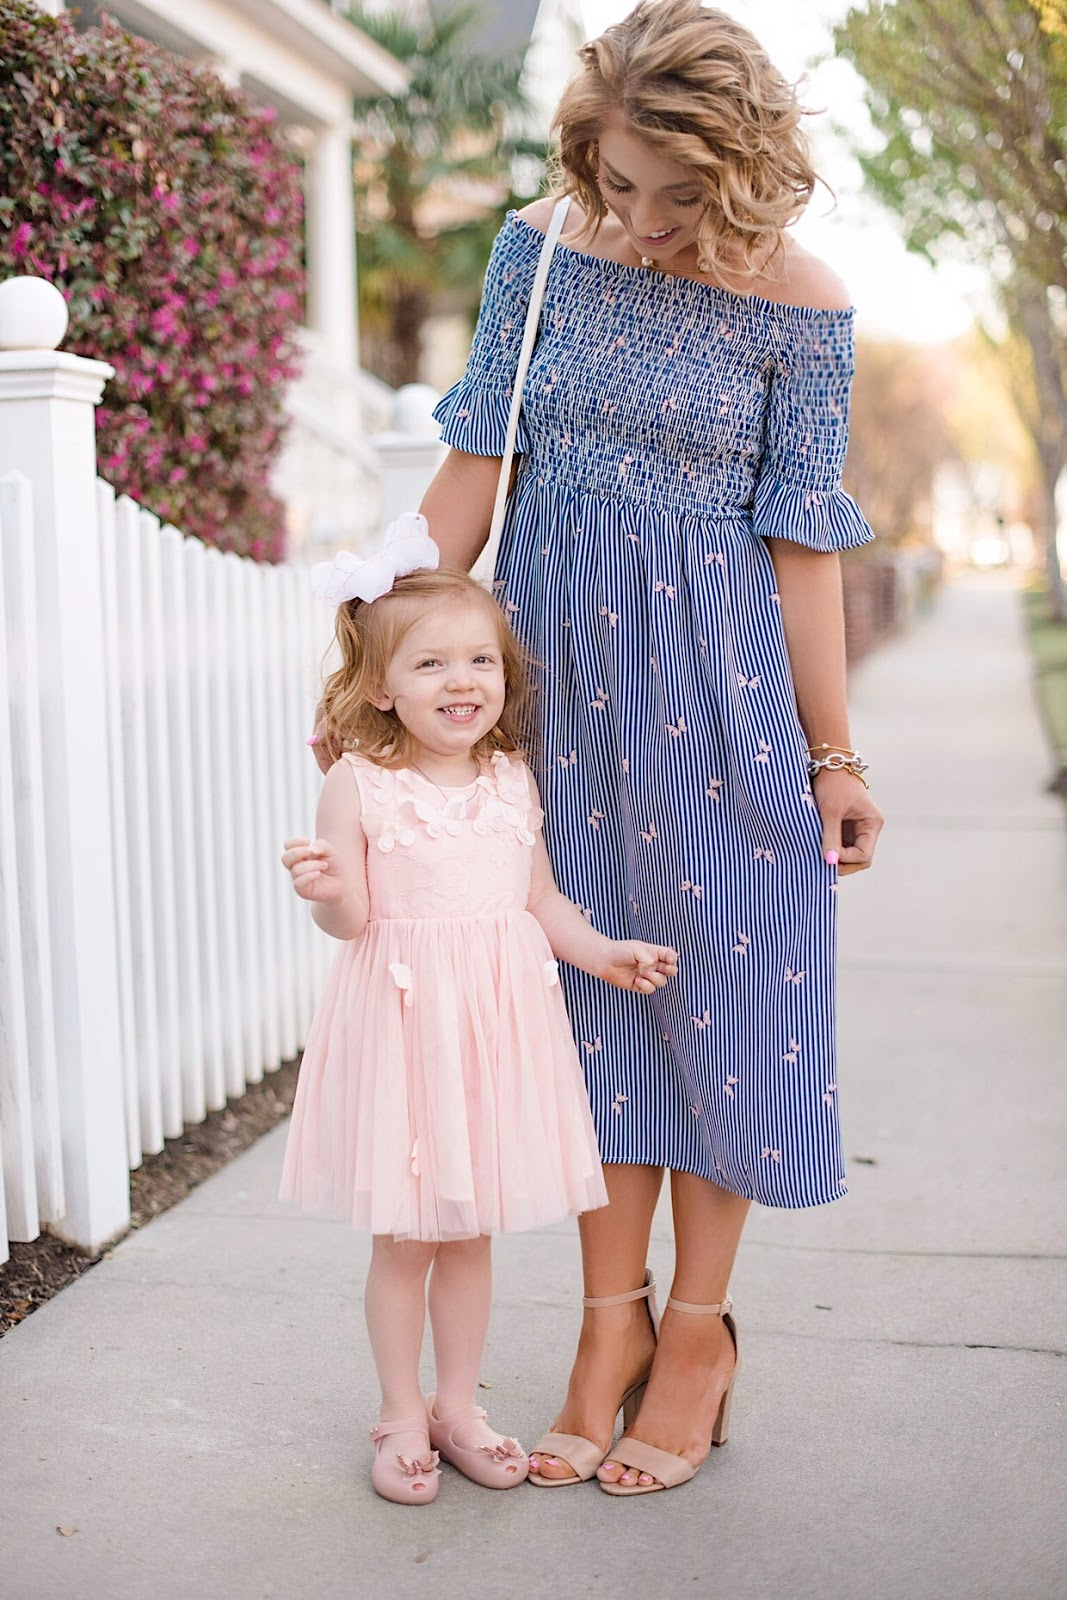 Easter Outfits: Mommy and Me Butterfly Dresses - Something Delightful Blog